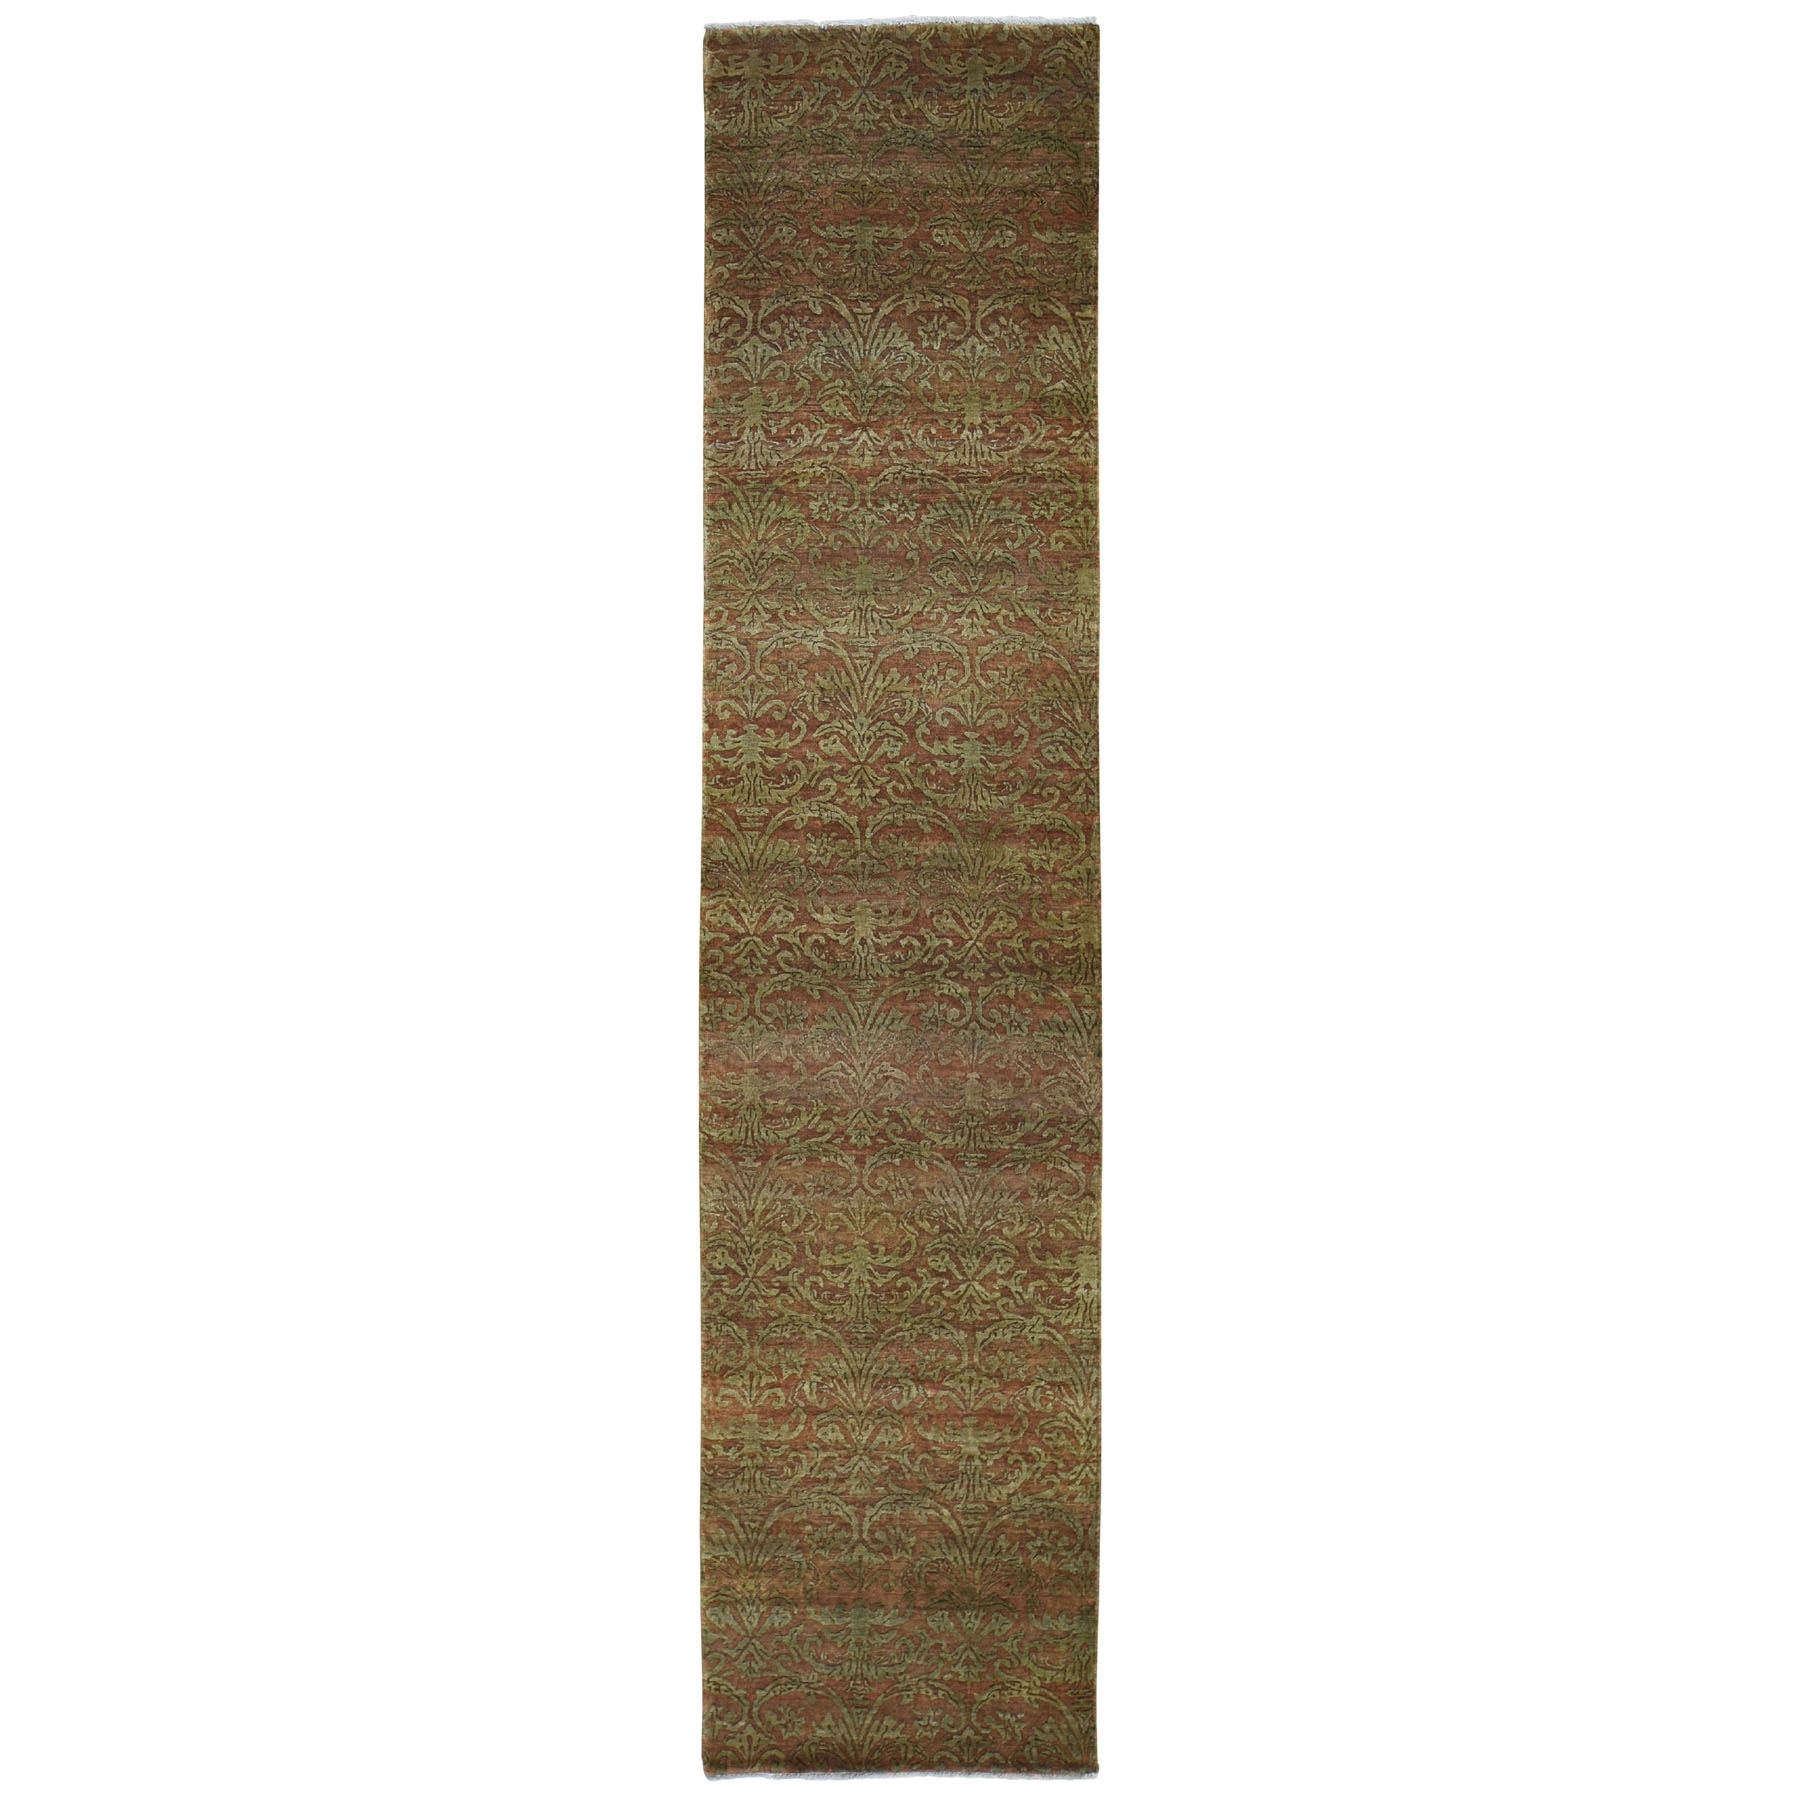 "2'5""X11'4"" Brown Damask Wool And Silk Tone On Tone Runner Hand Knotted Oriental Rug moad80aa"